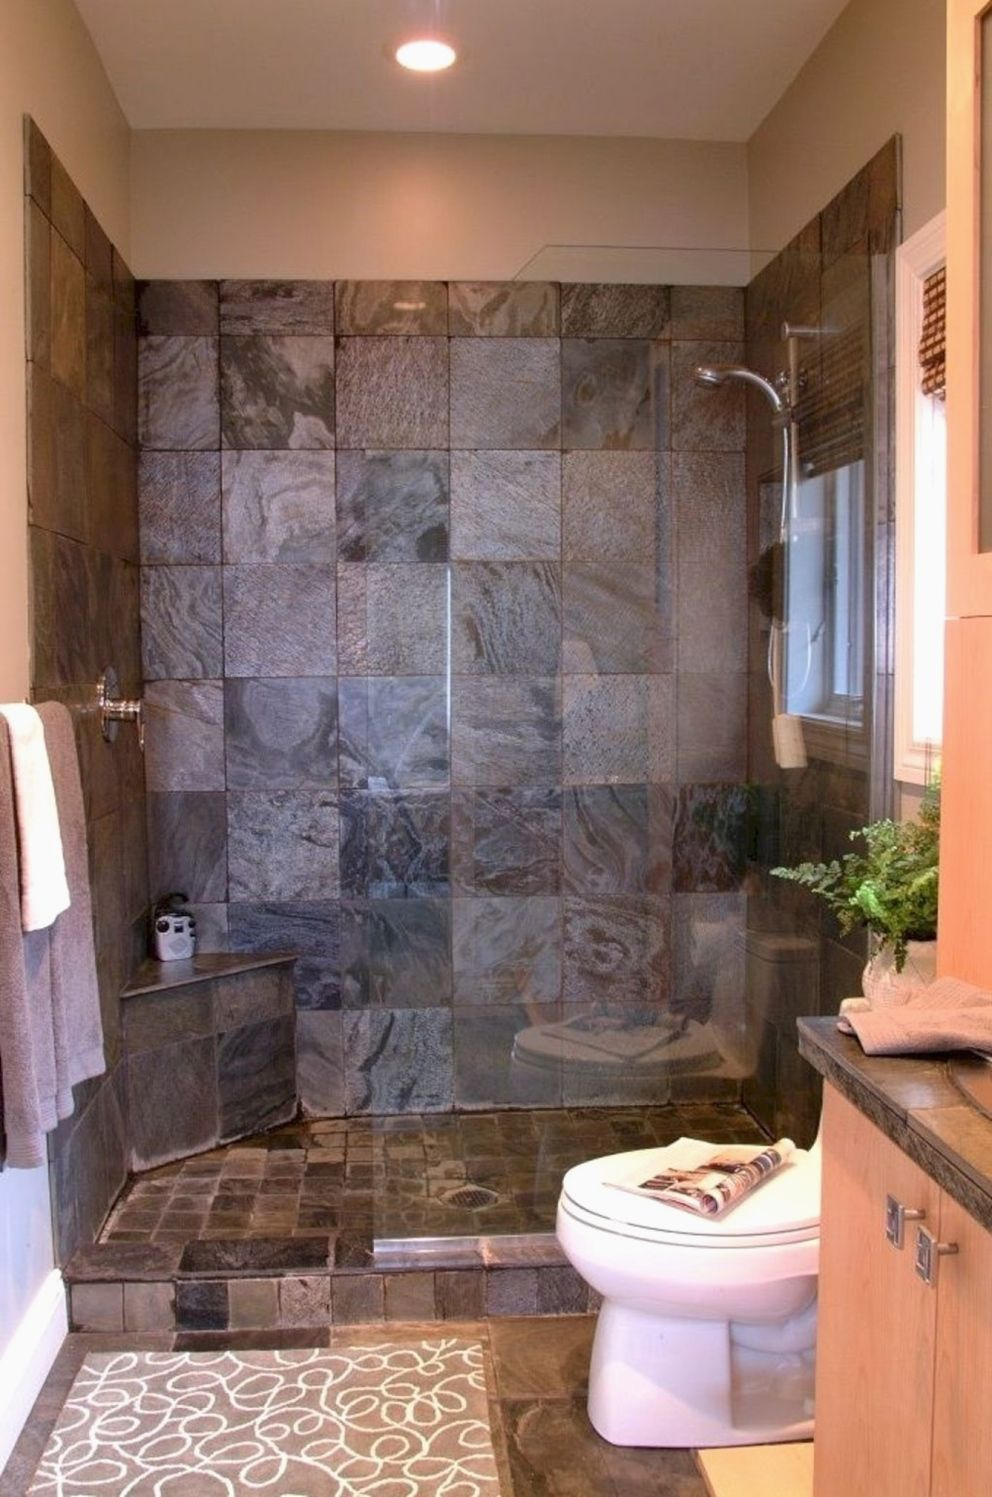 Remodeling A House On A Tight Budget Small Master Bathroom